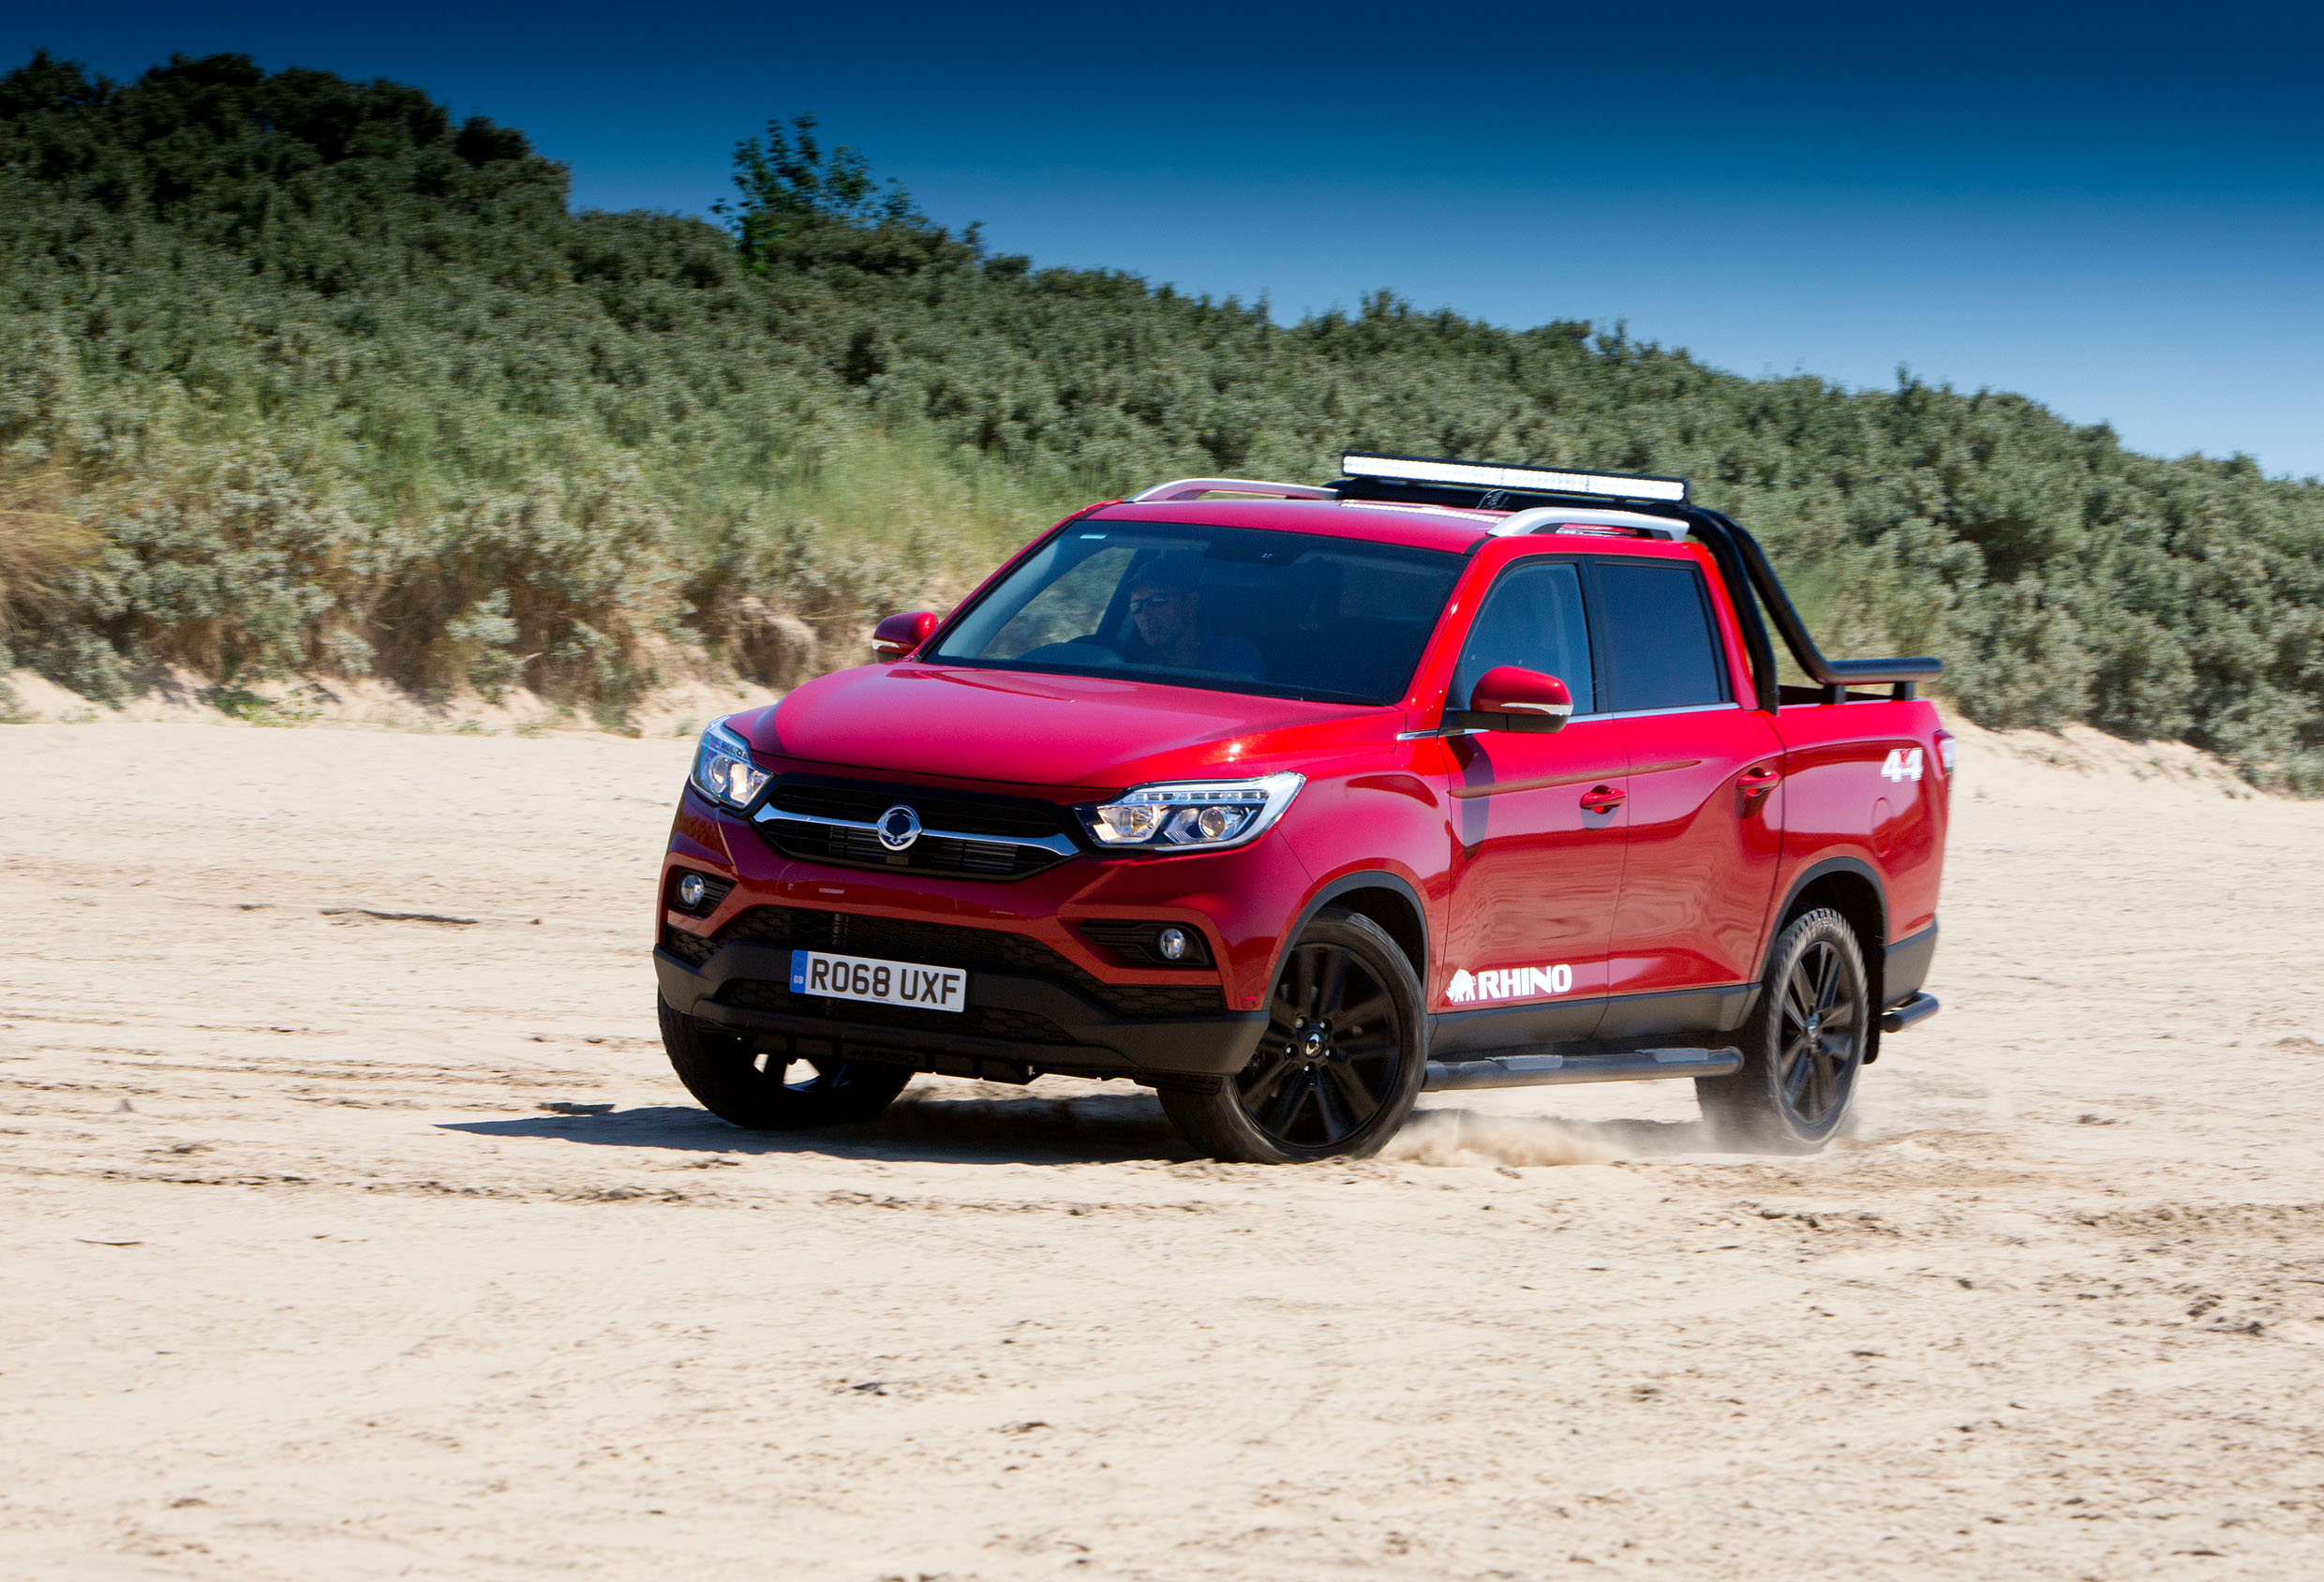 New SsangYong Musso Has 7-Year Warranty, 4 Trims | 4X4 Magazine